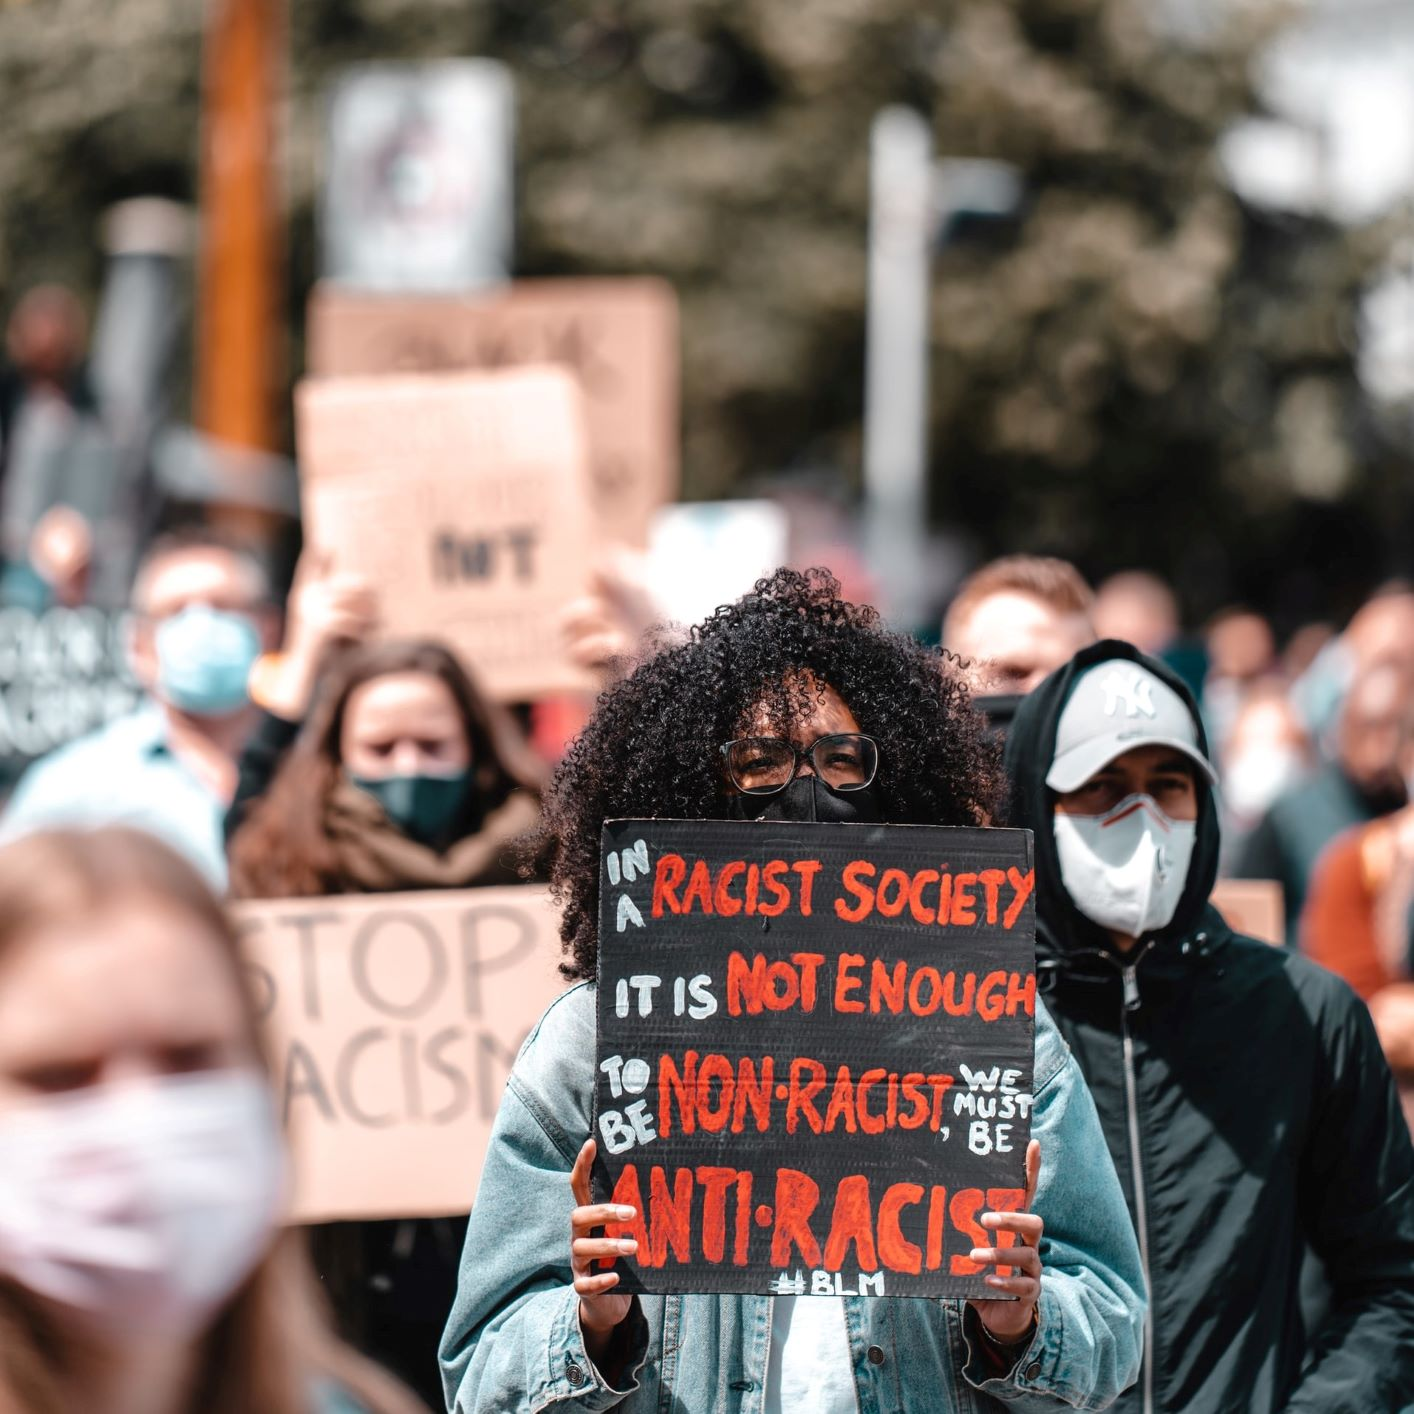 """Black woman marching with protestors with a sign that reads, """"in a racist society it is not enough to be non-racist, we must be anti-racist #BLM"""""""